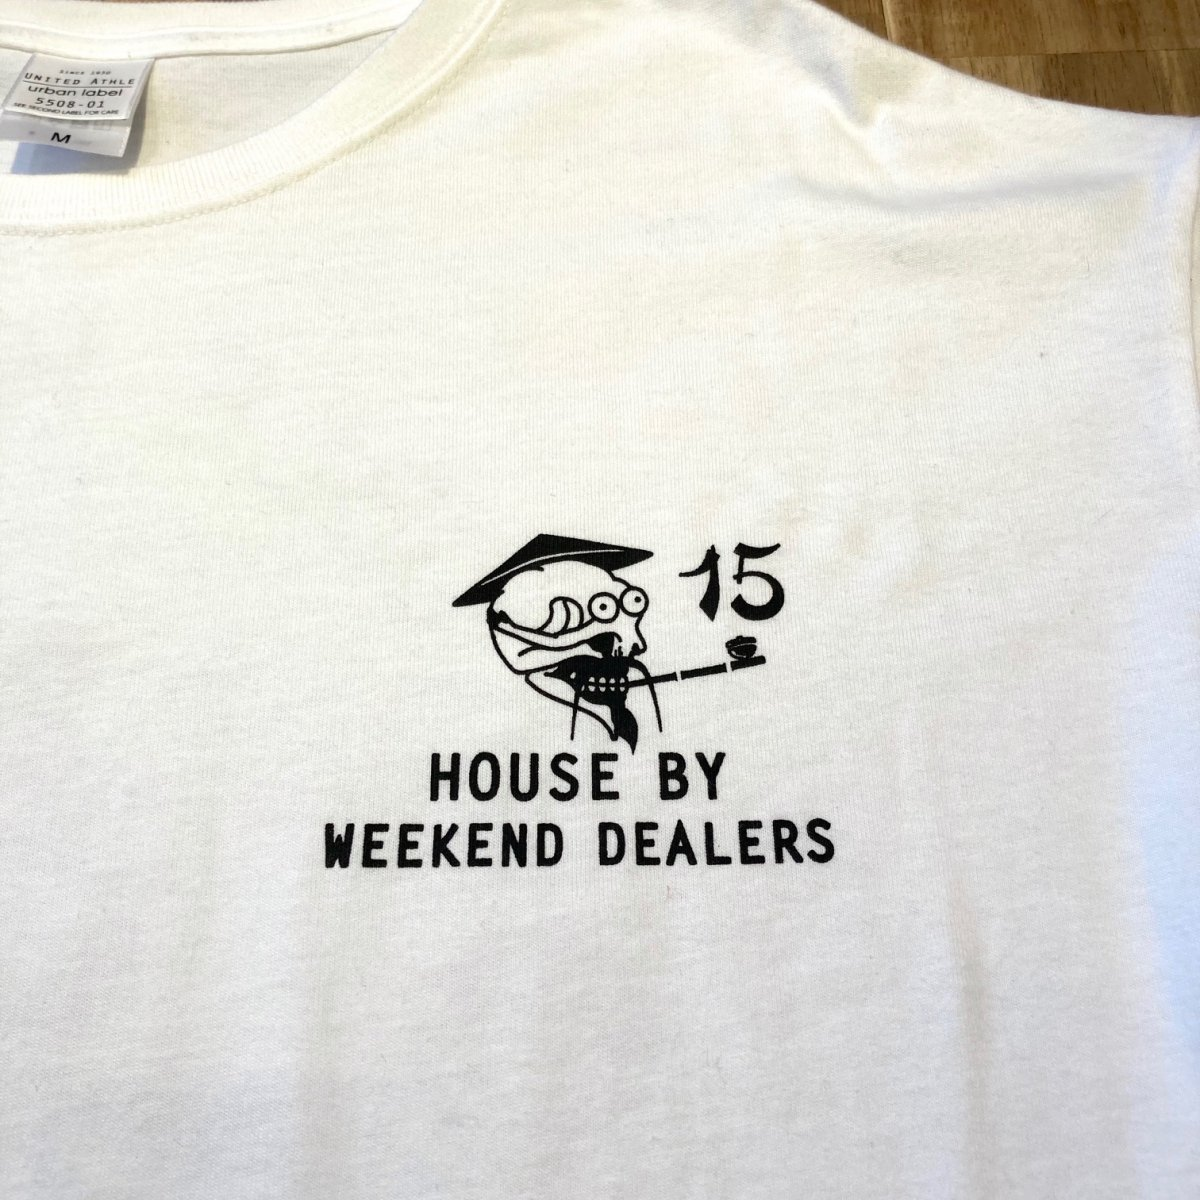 <img class='new_mark_img1' src='https://img.shop-pro.jp/img/new/icons3.gif' style='border:none;display:inline;margin:0px;padding:0px;width:auto;' />Black Weirdos × HOUSE by WEEKEND DEALERS 15th ANNIVERSARY Tee 【WHITE】